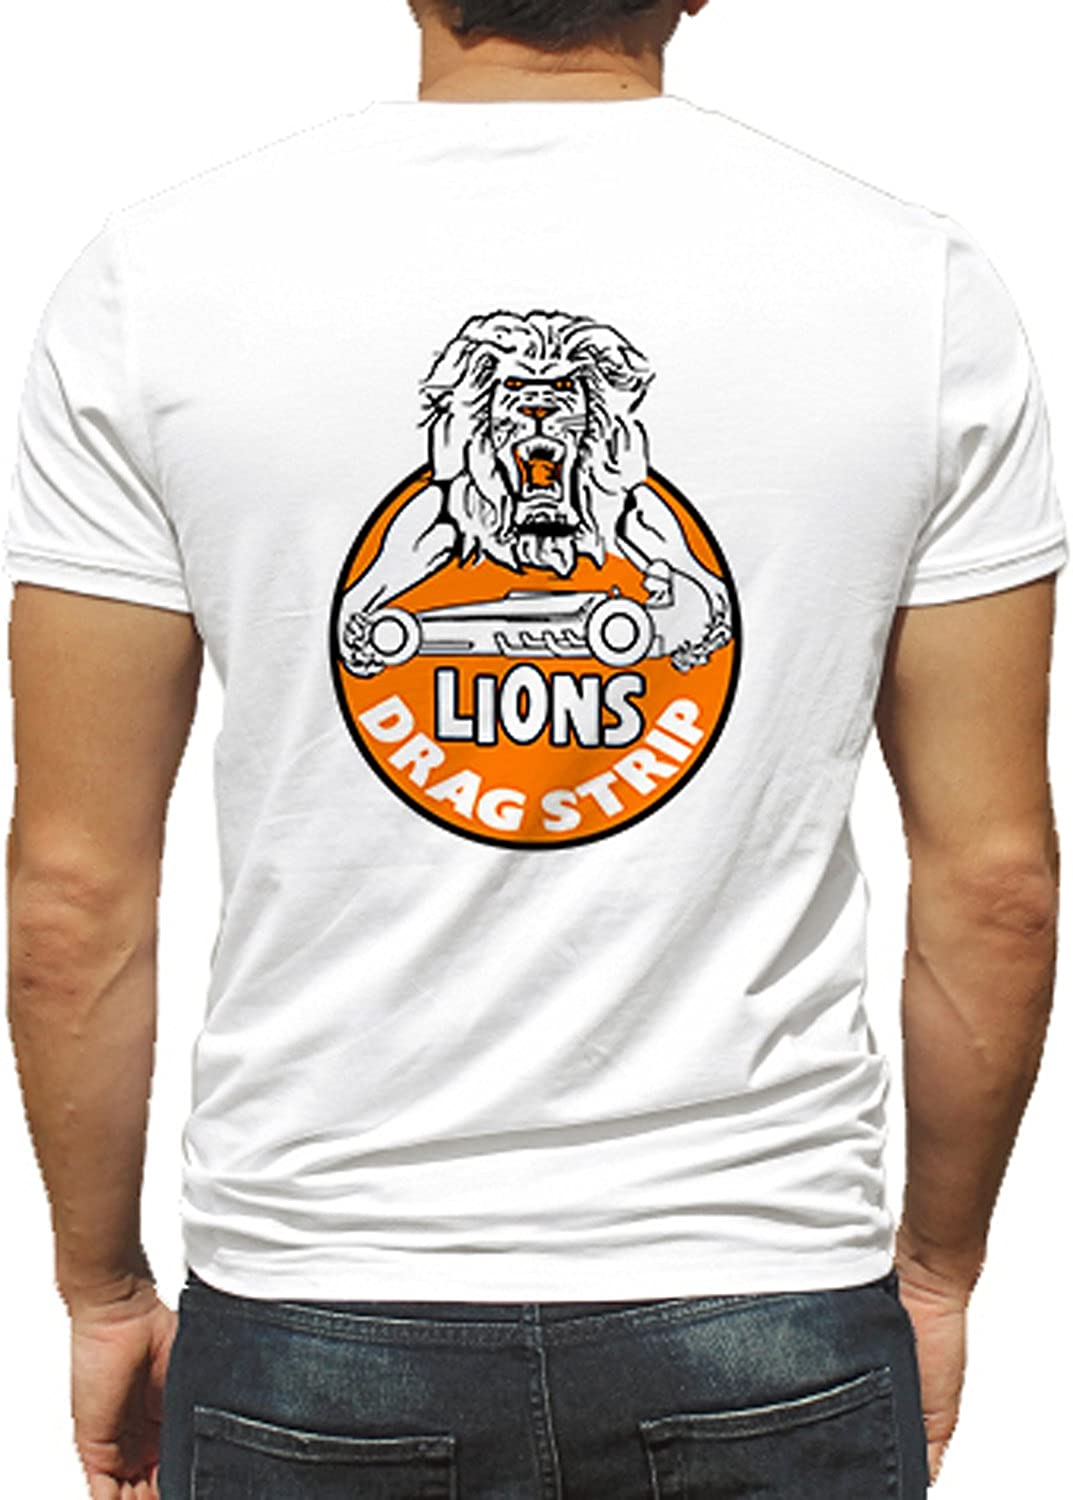 Lions Drag Strip Orange Lion's Arms Hot Rod Rat Nostalgia Drag Race Racing NHRA White Short Sleeve Shirt